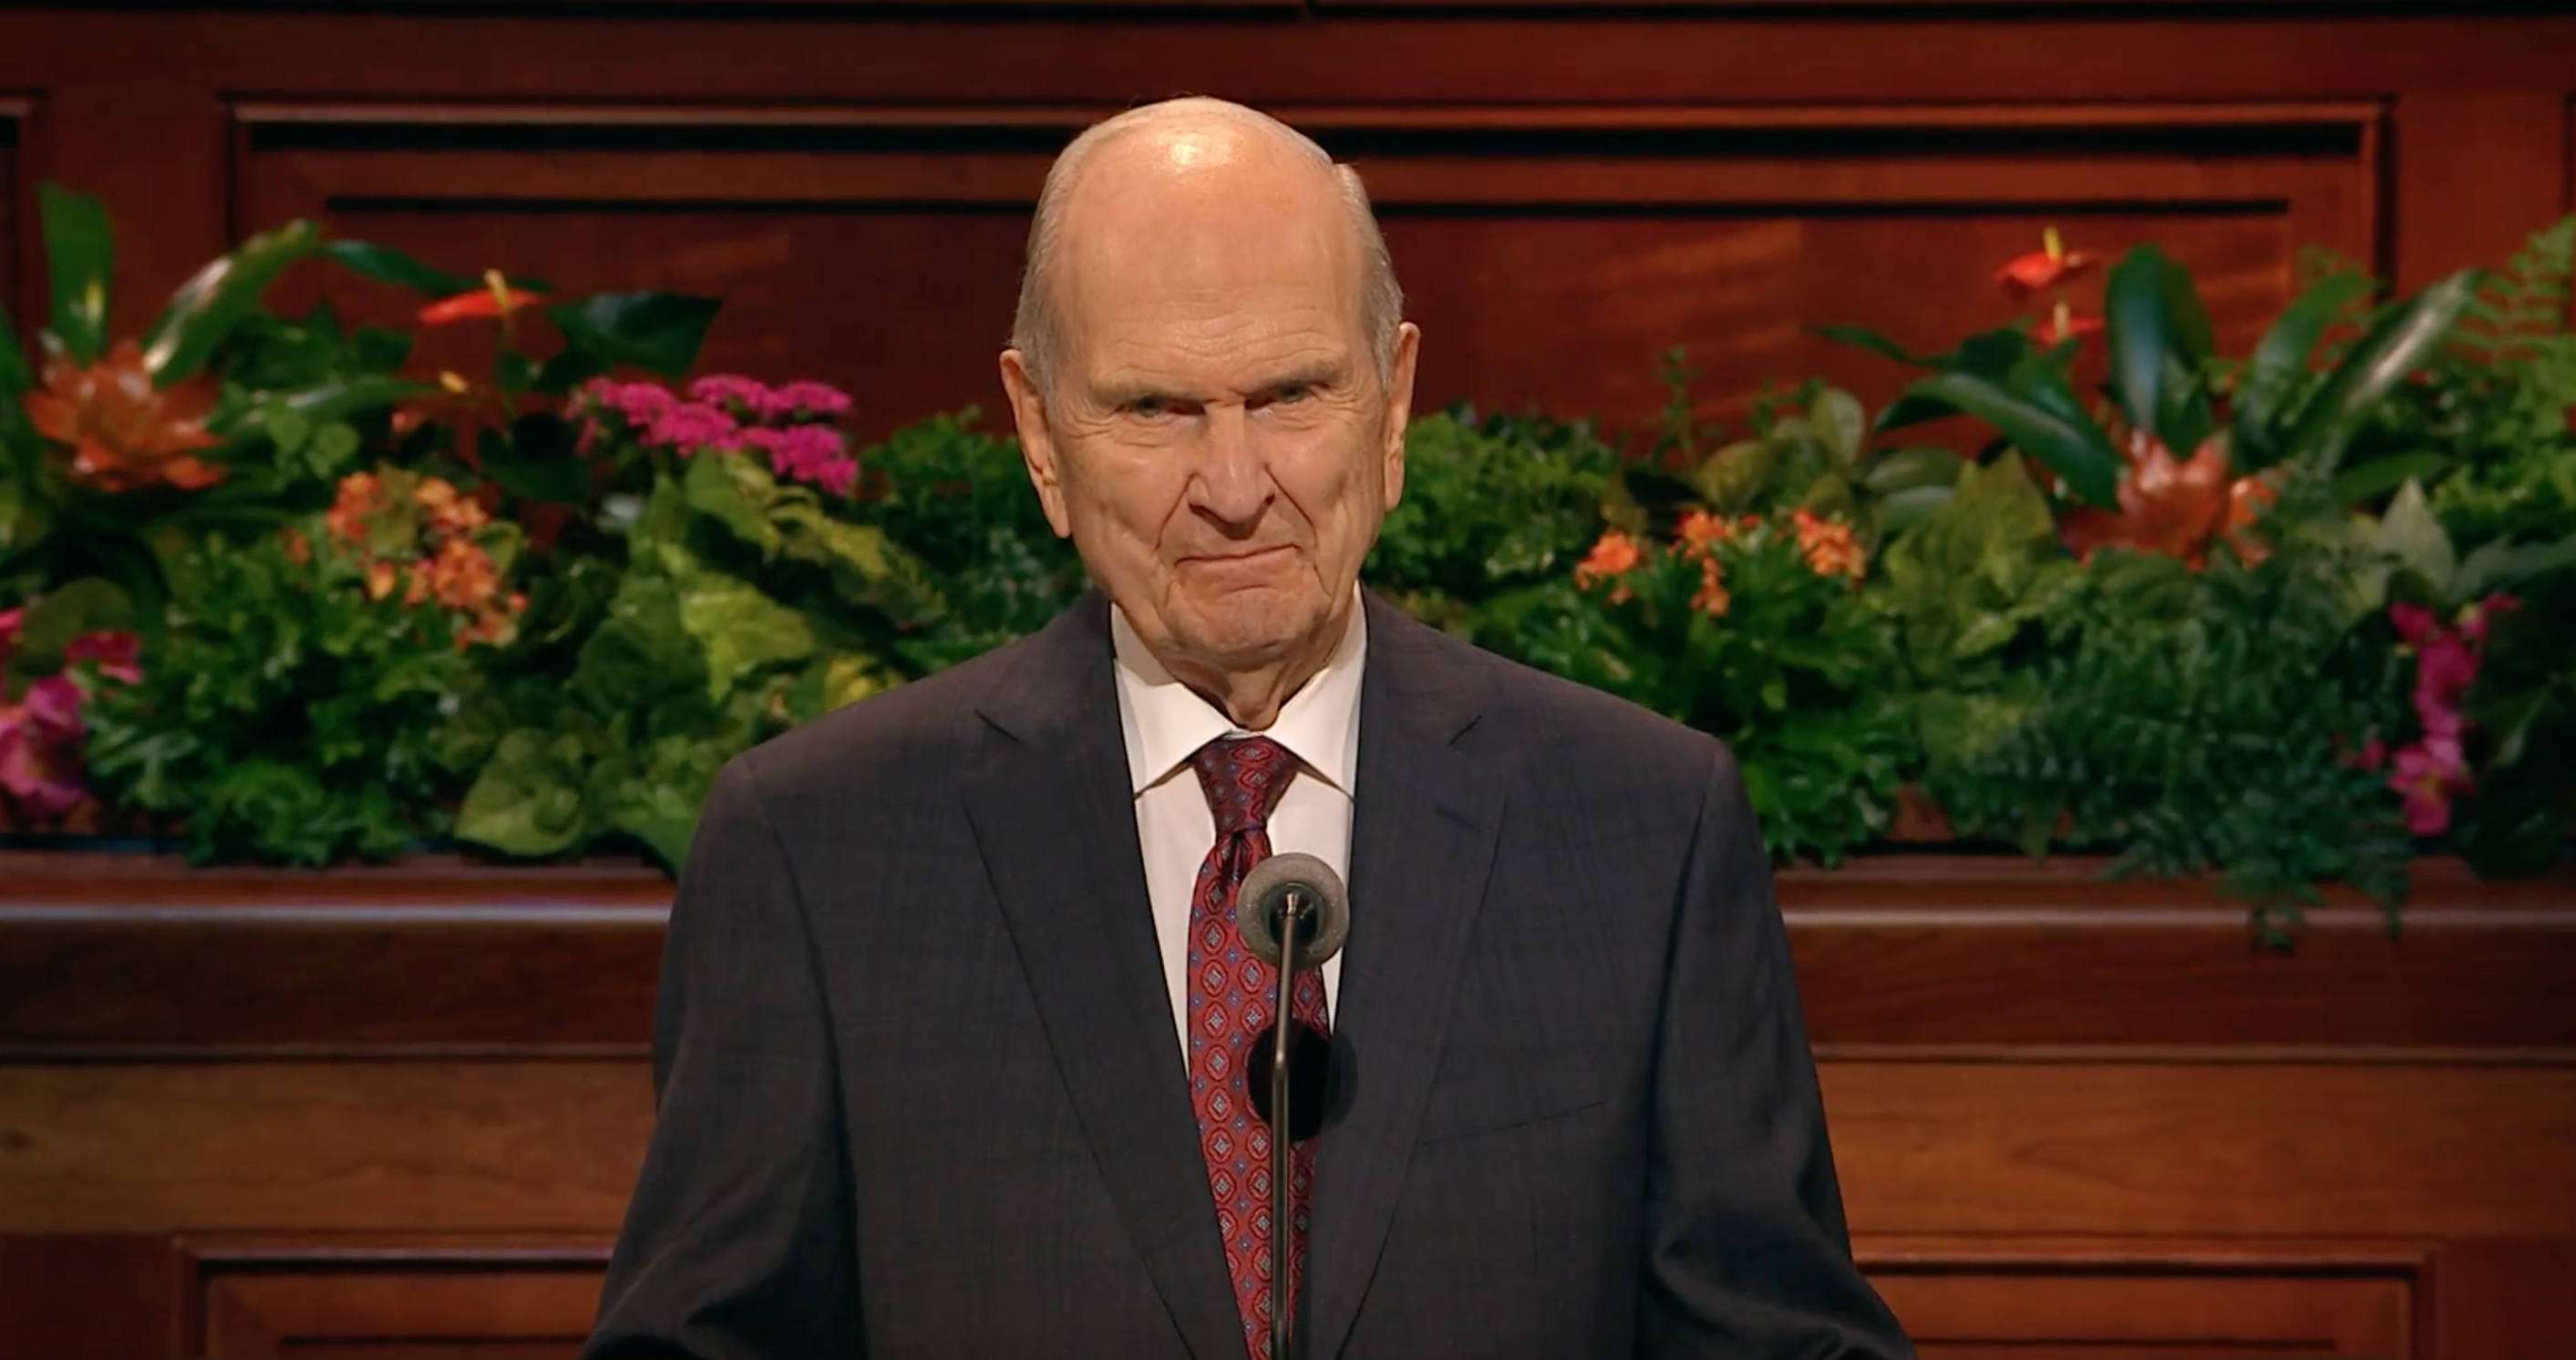 President Russell M. Nelson gives his closing remarks during October 2018 general conference.